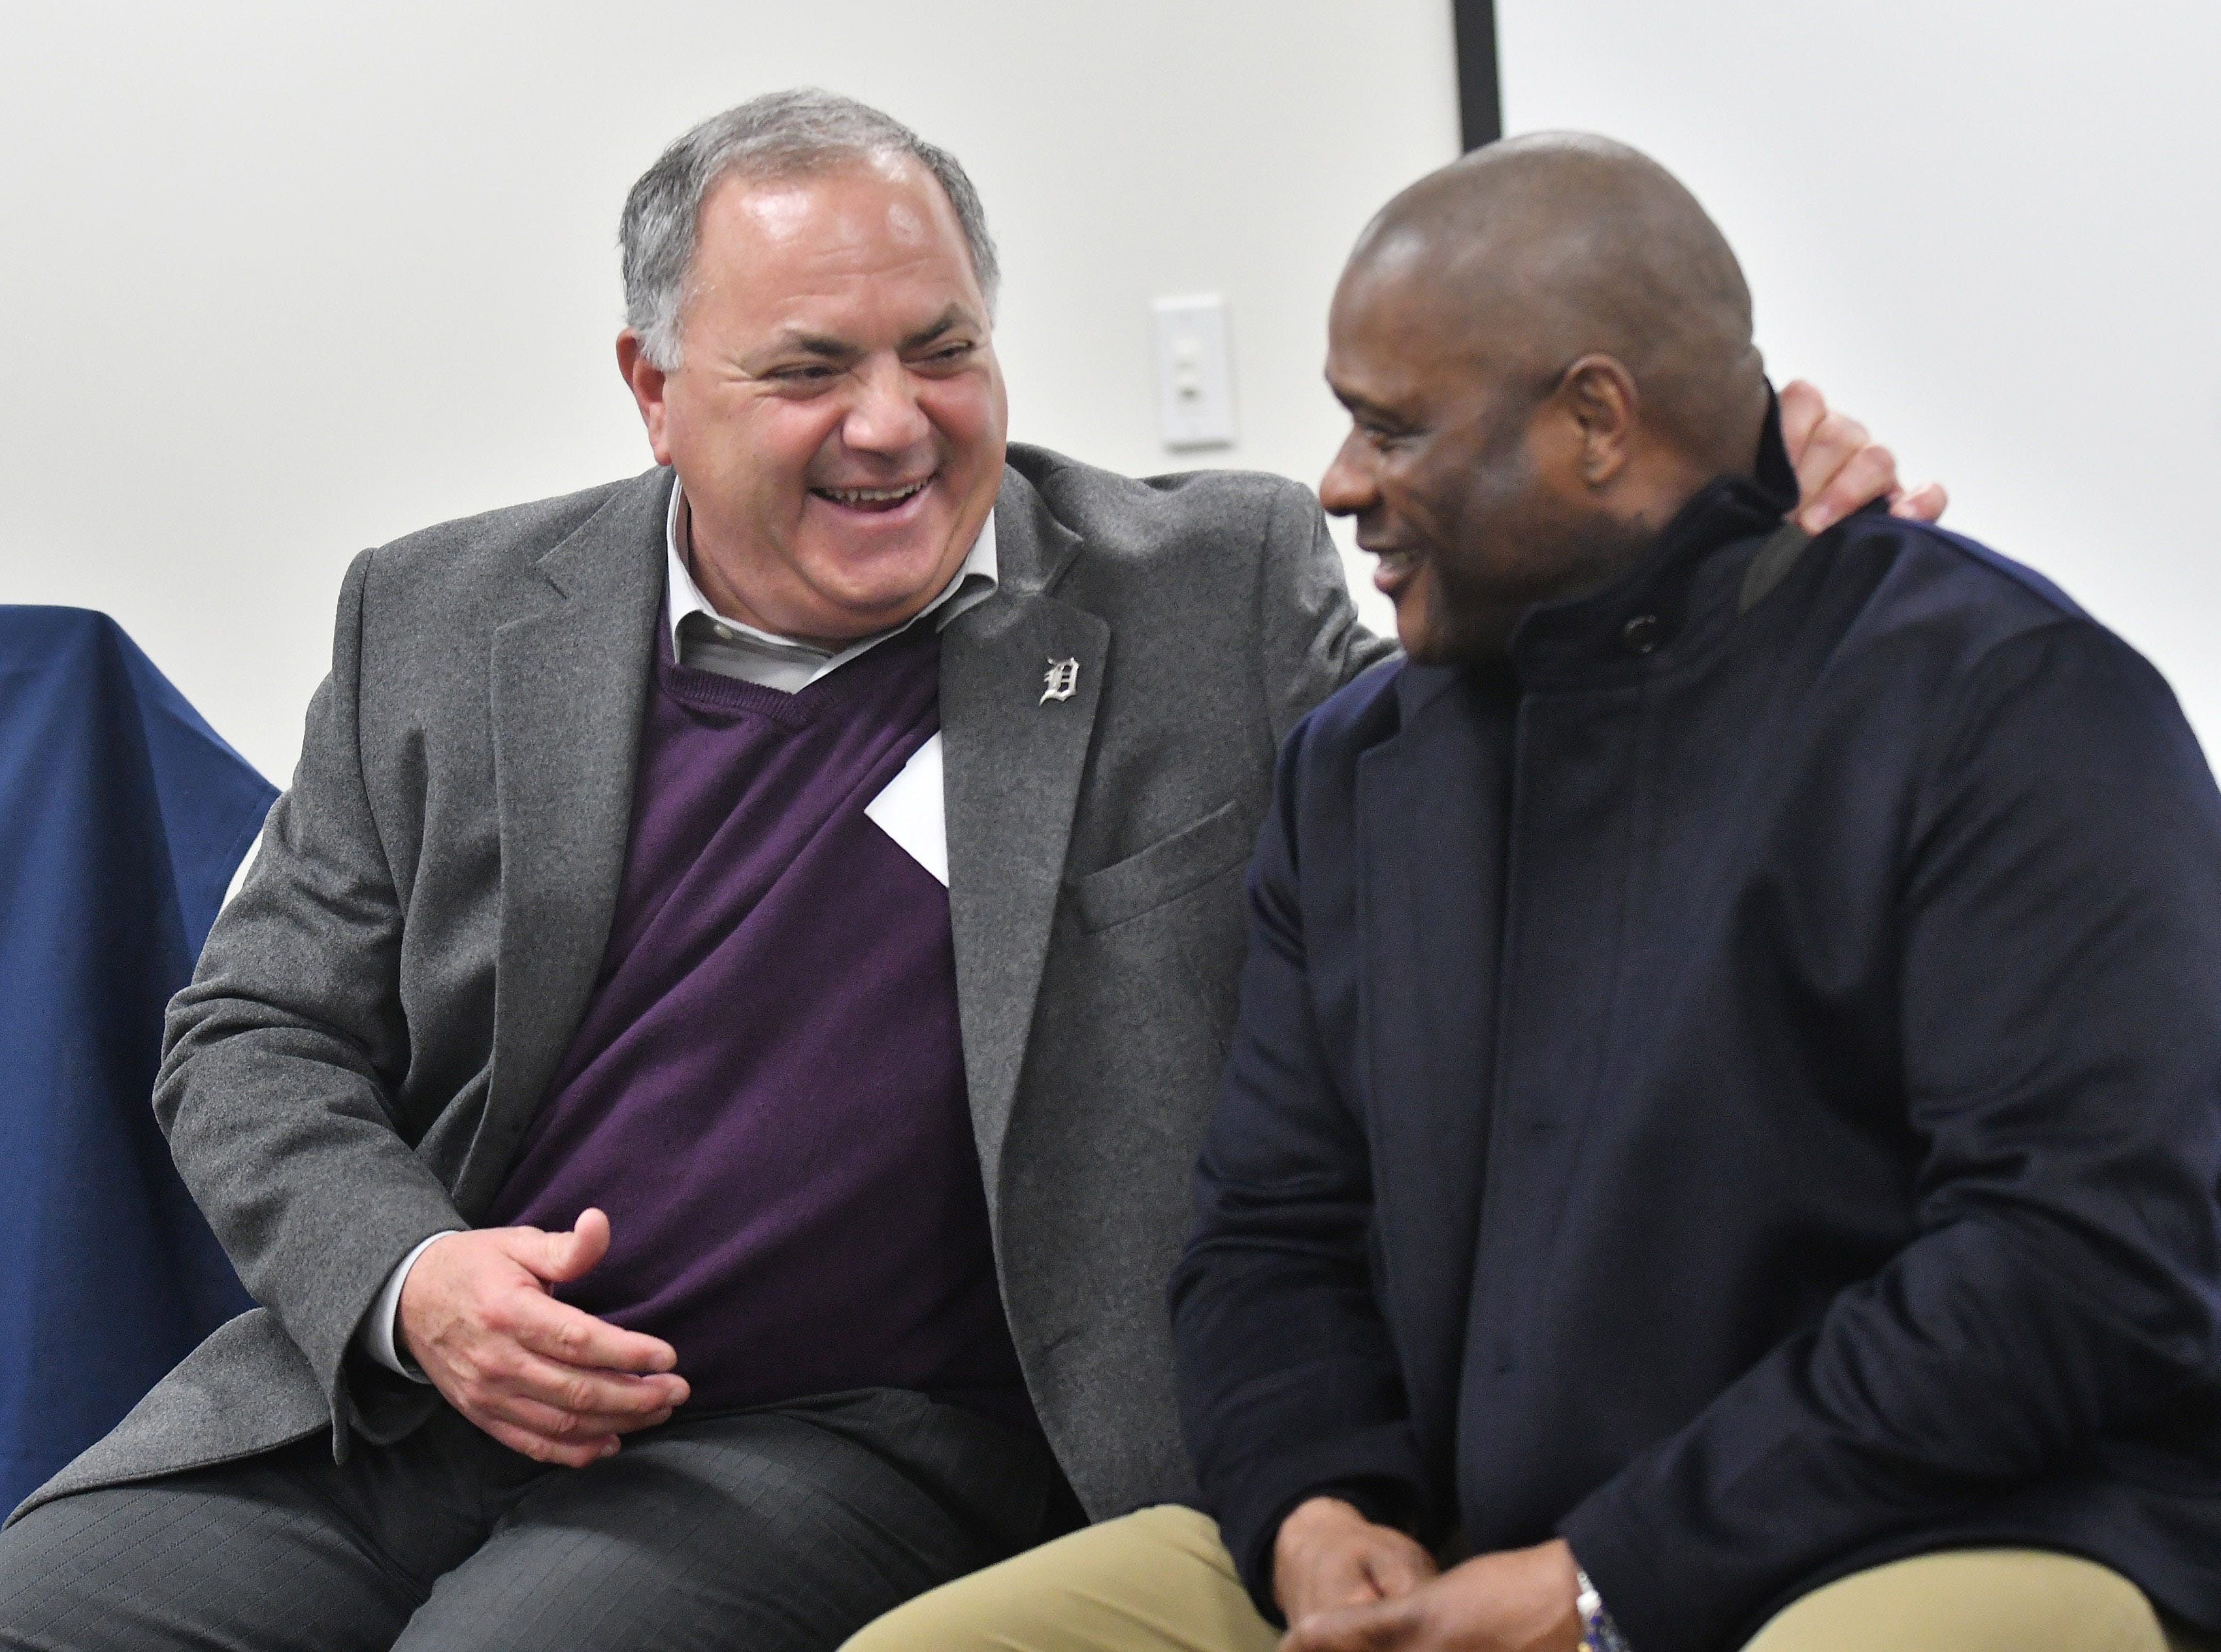 Tigers executive vice president of baseball operations and general manager Al Avila talks with hitting coach Lloyd McClendon, right, during a stop on the 2019 Detroit Tigers Winter Caravan at the John D. Dingell VA Medical Center in Detroit on Jan. 24, 2019.